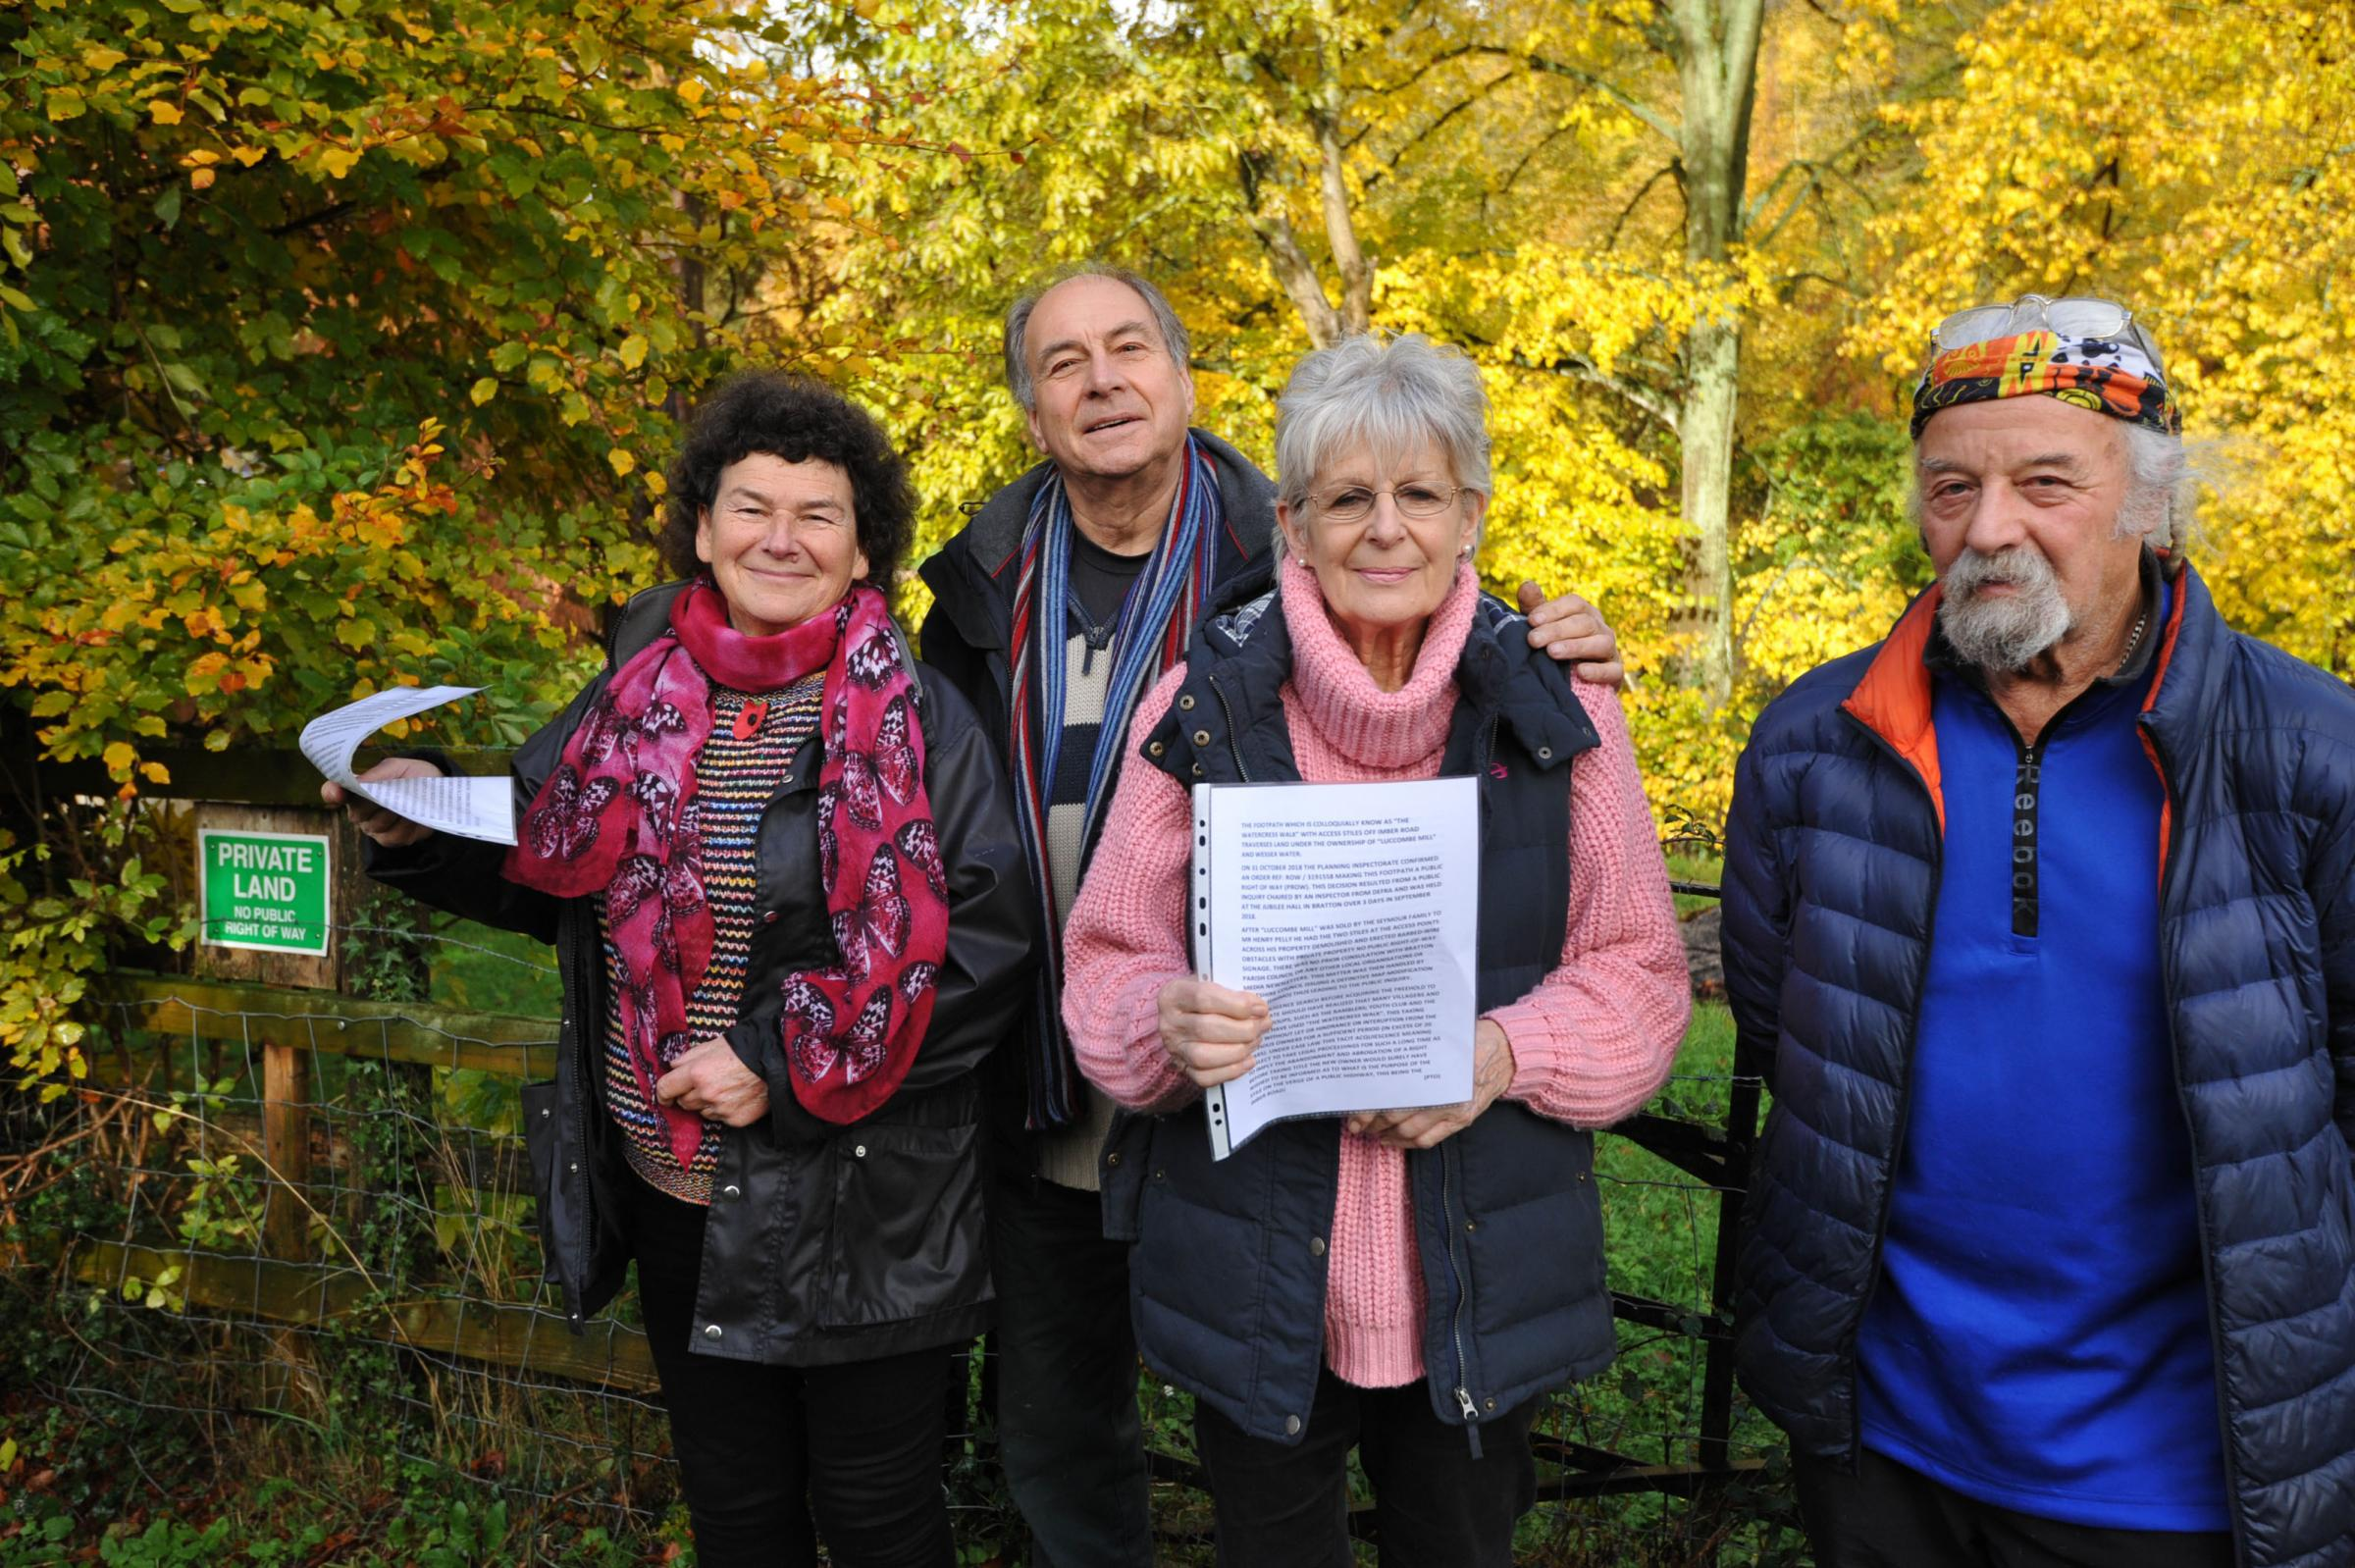 Villager win to keep Footpath open. Campaigners  Gill Humphrey, Katherine Beaumont, Ian Humphrey and Bryan White with documents relating to their court win.. Photo Trevor Porter 60005 2..